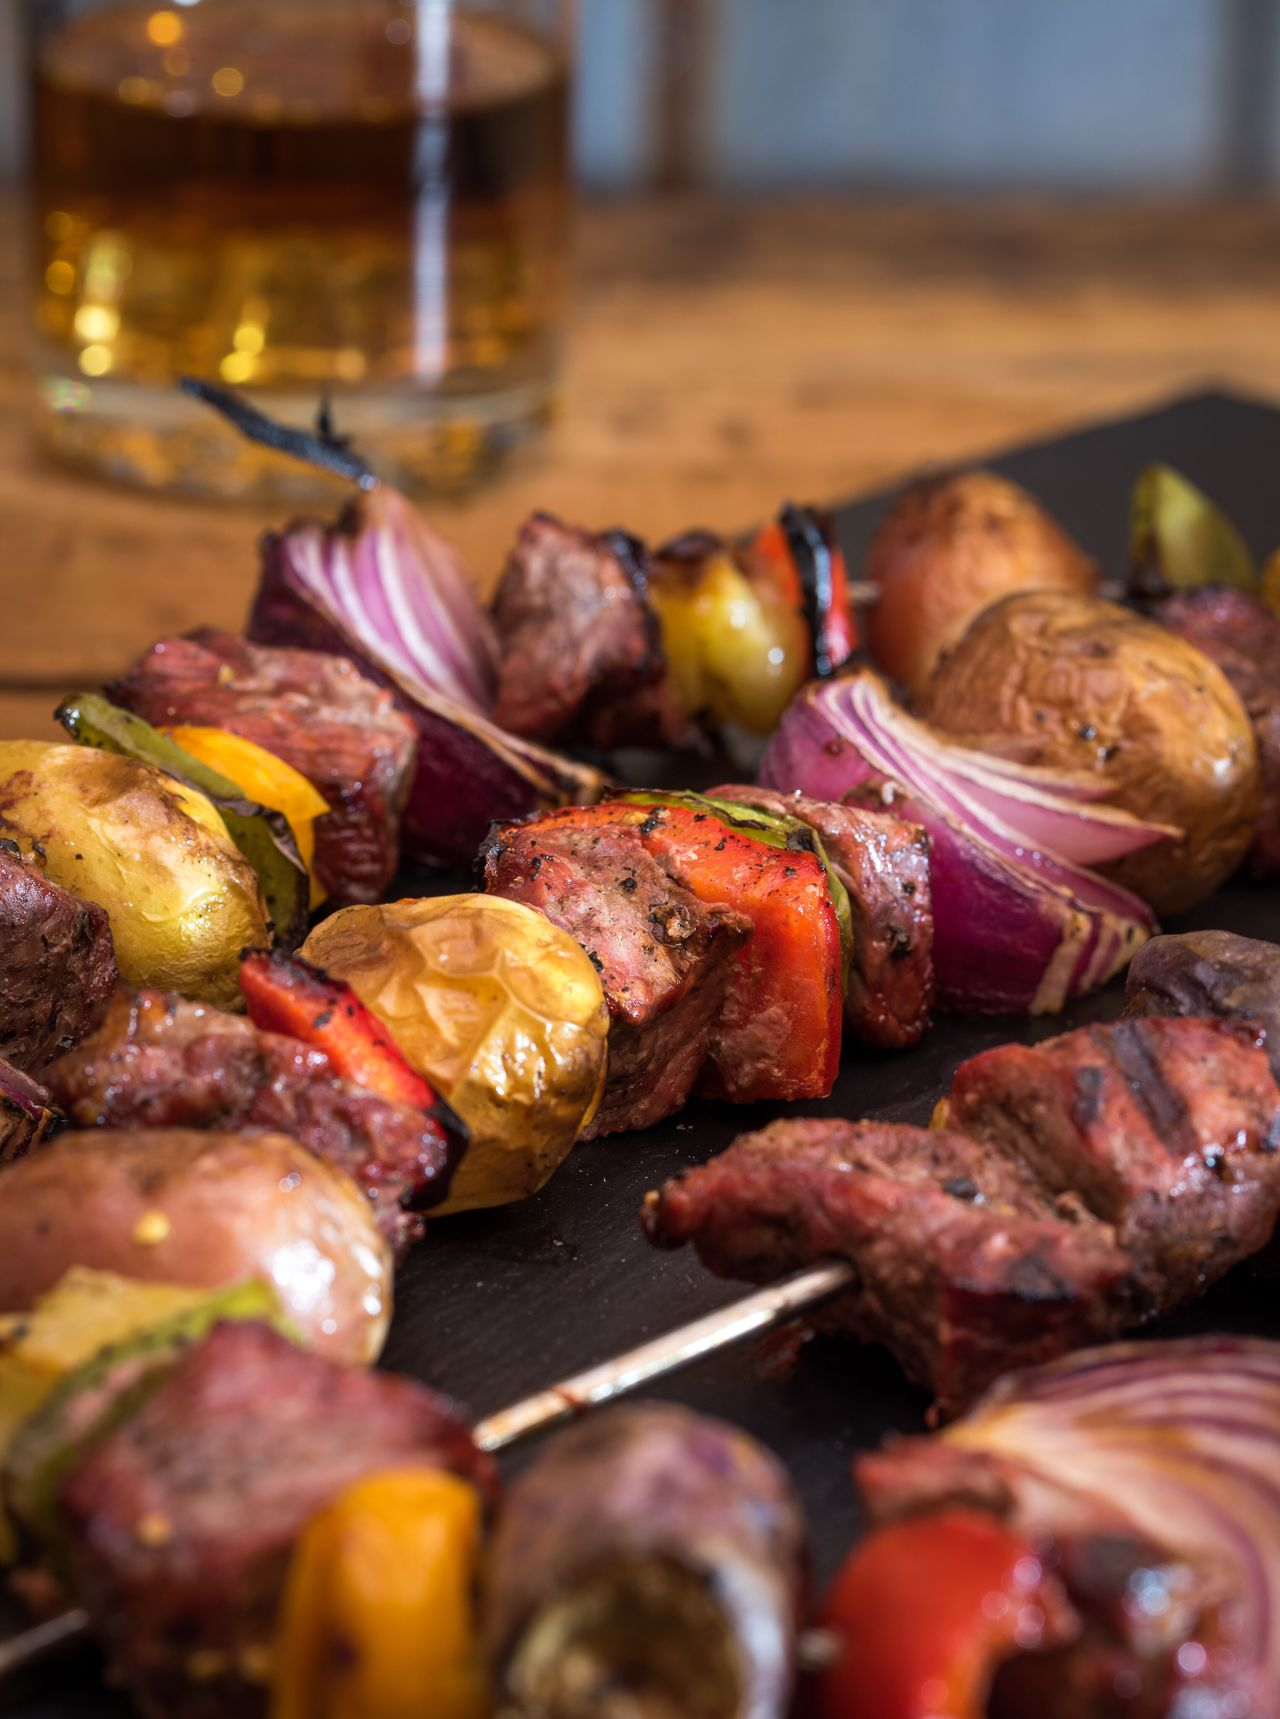 Ribeye Steak Kabobs Food No People Vegetable Ready-to-eat Photo Of The Day Kabob Steak Ribeye Savory Grilled Cooked Tasty Protein